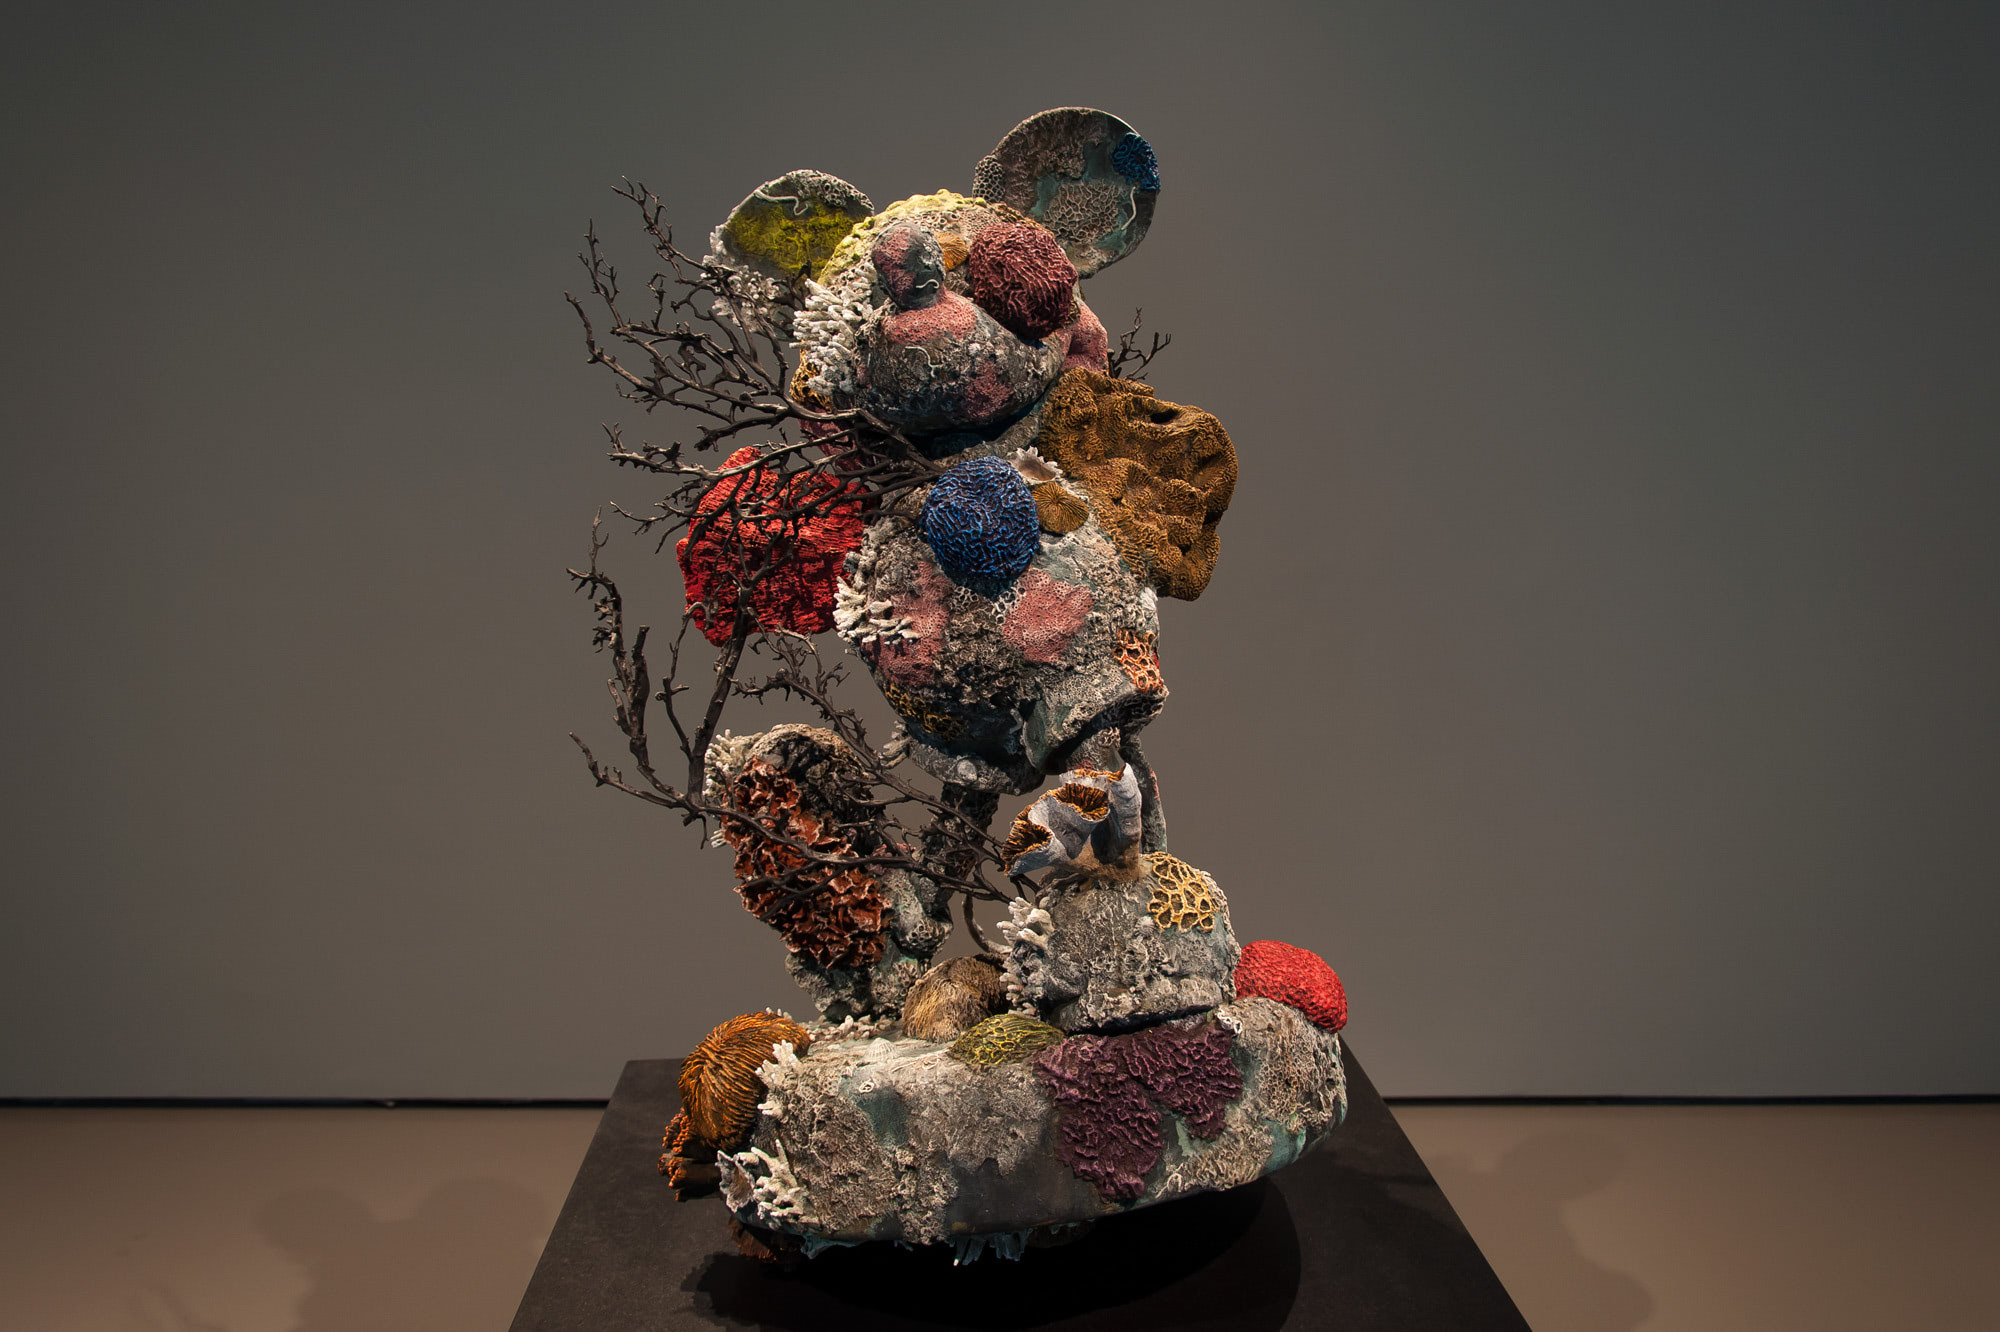 Damien-Hirst-Treasures-from-the-Wreck-of-the-Unbelievable-ph.-Irene-Fanizza-10